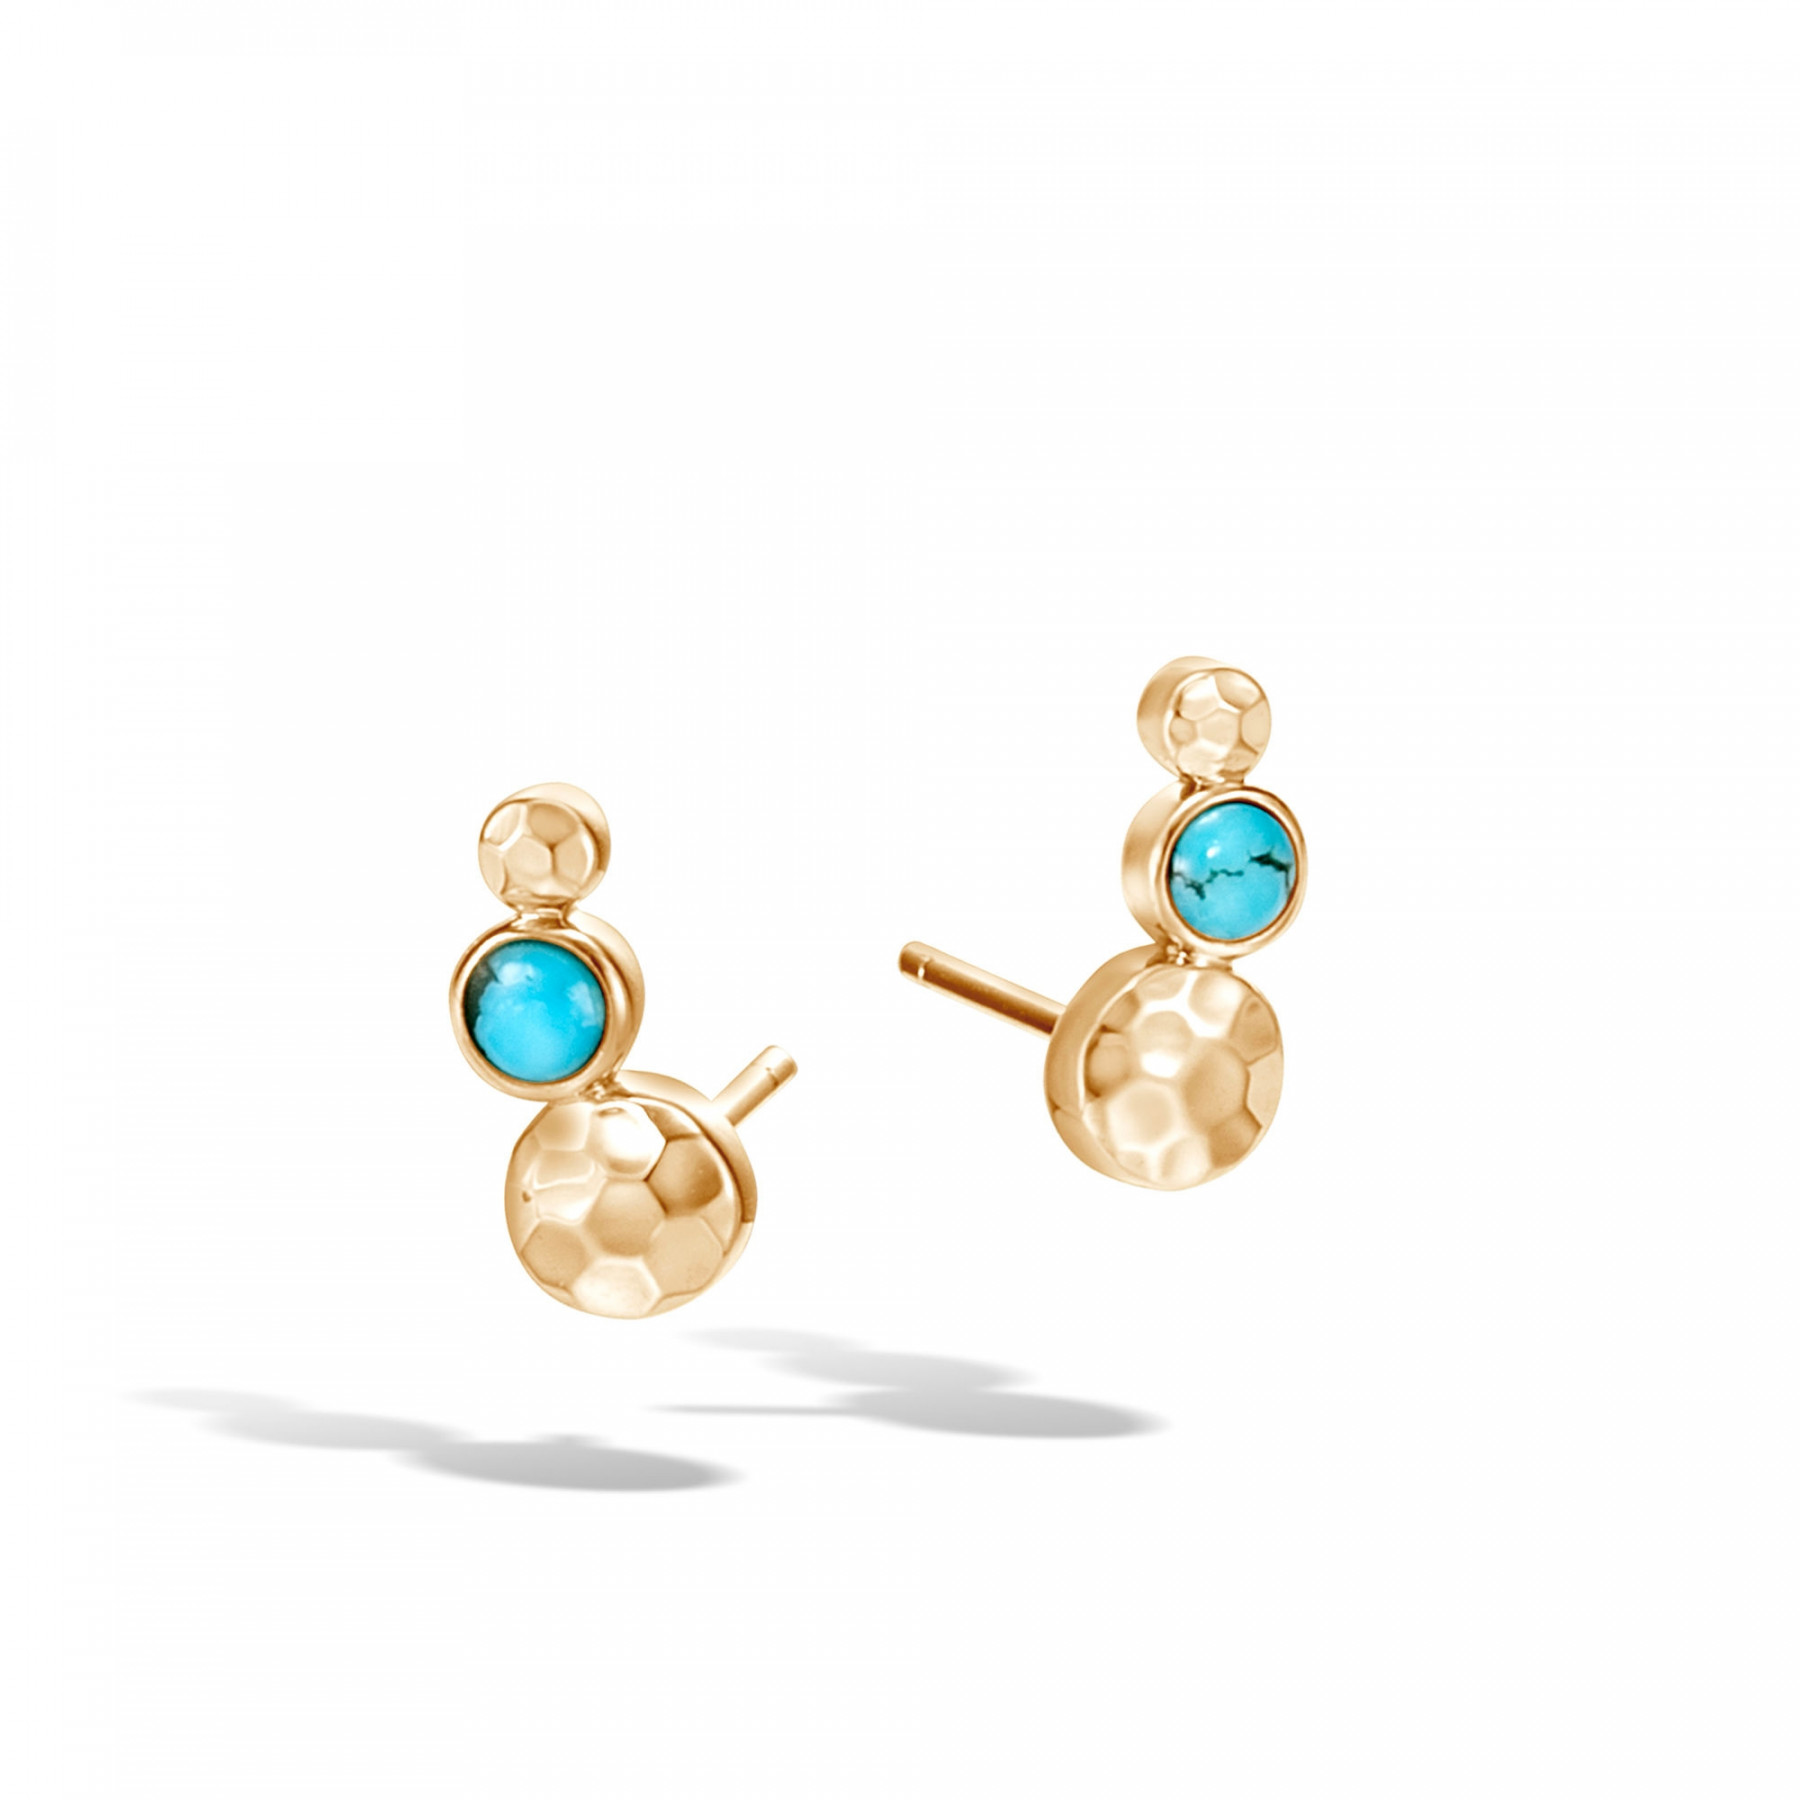 John Hardy Dot Three Circle Turquoise Stud Earrings in 18k Yellow Gold front view